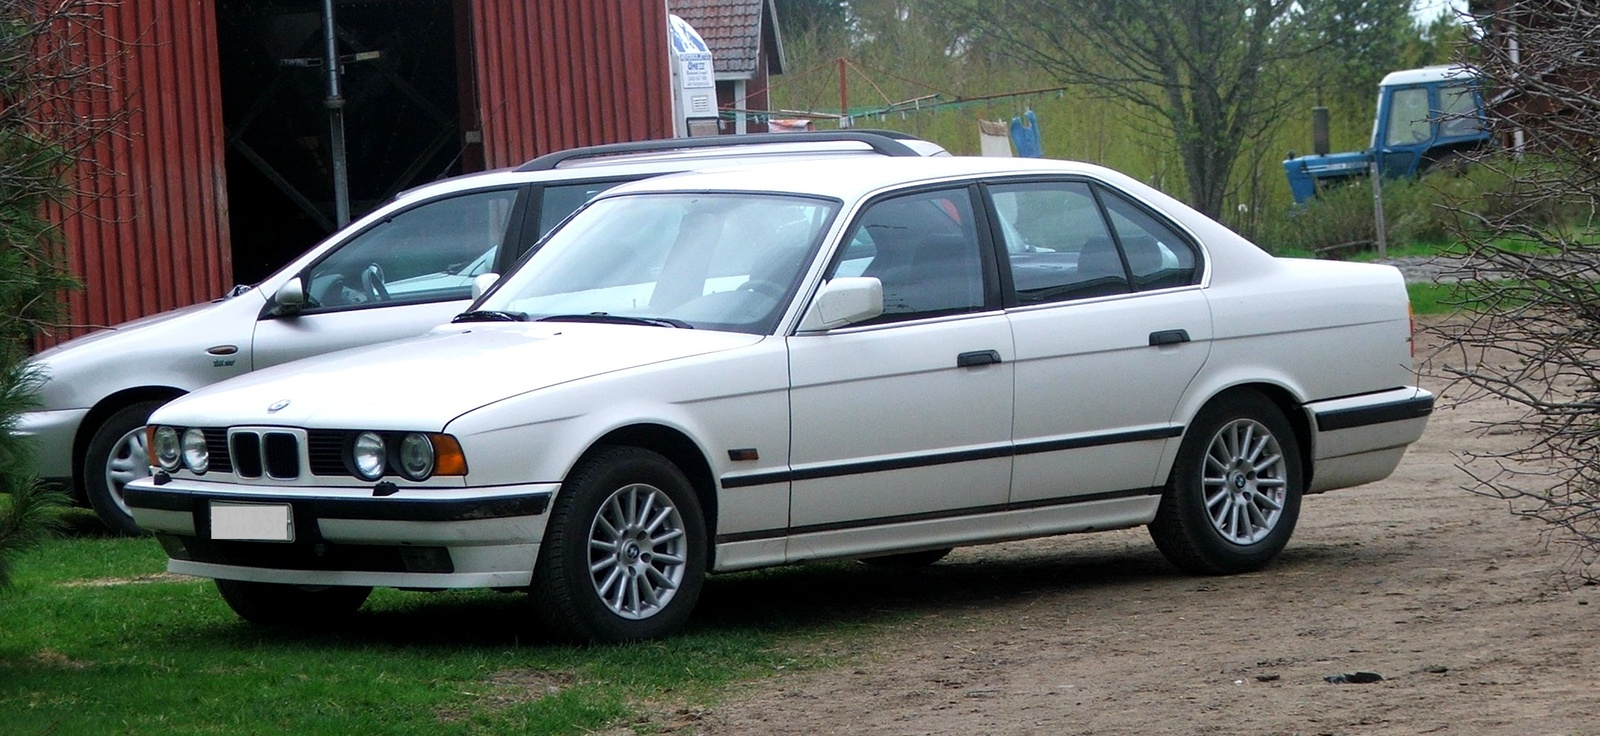 1990 Bmw 5 Series - Pictures